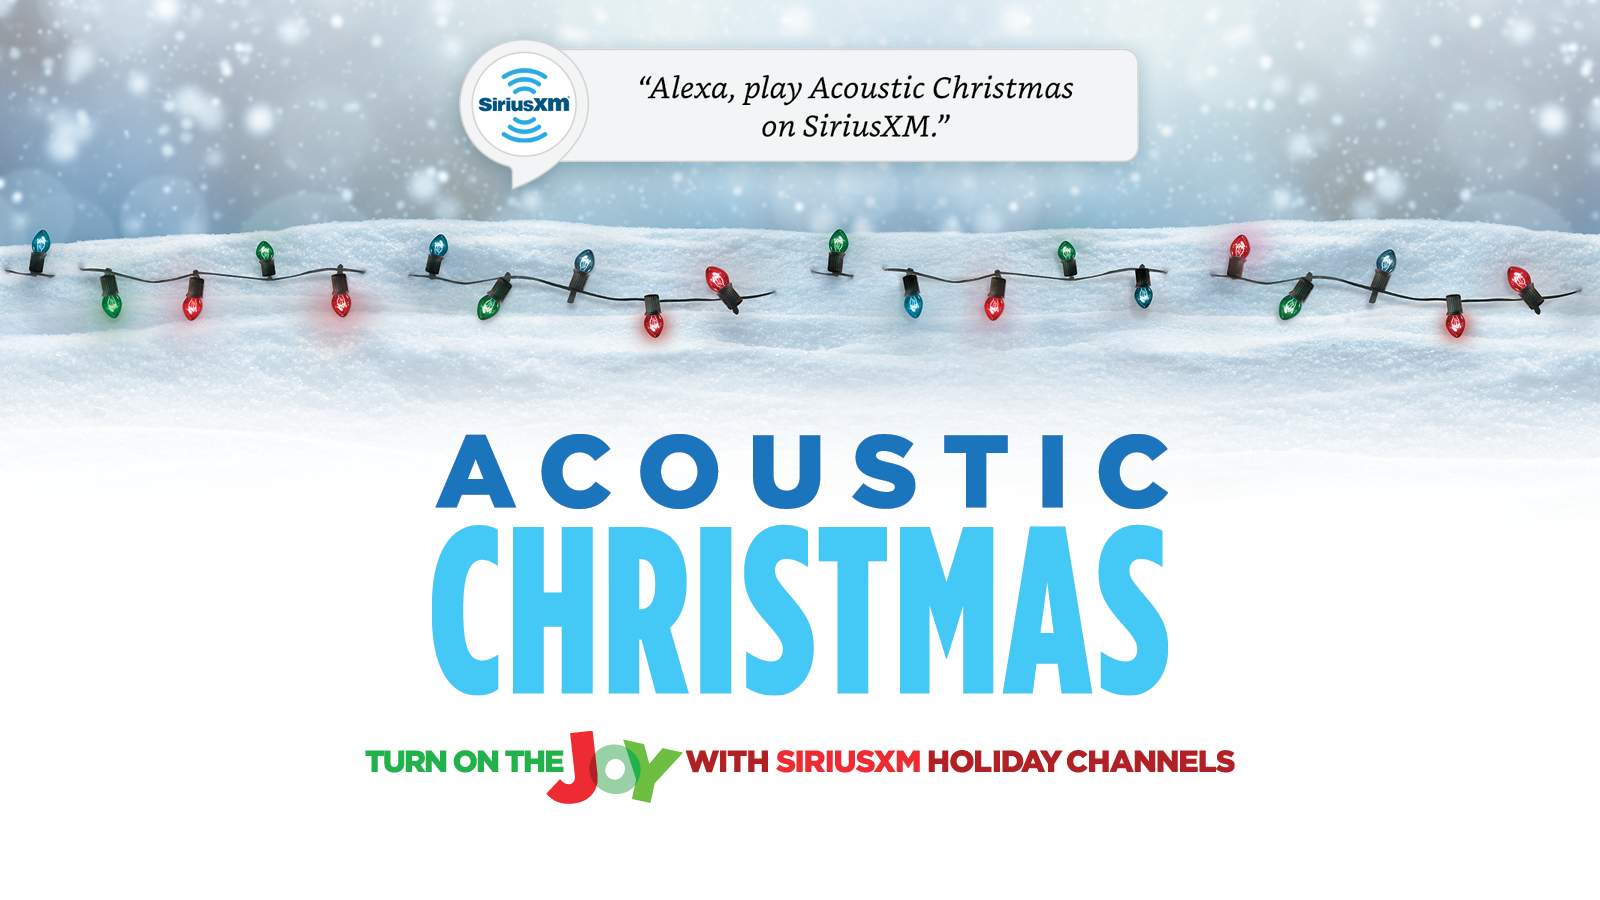 SiriusXM's new 2018 holiday channels